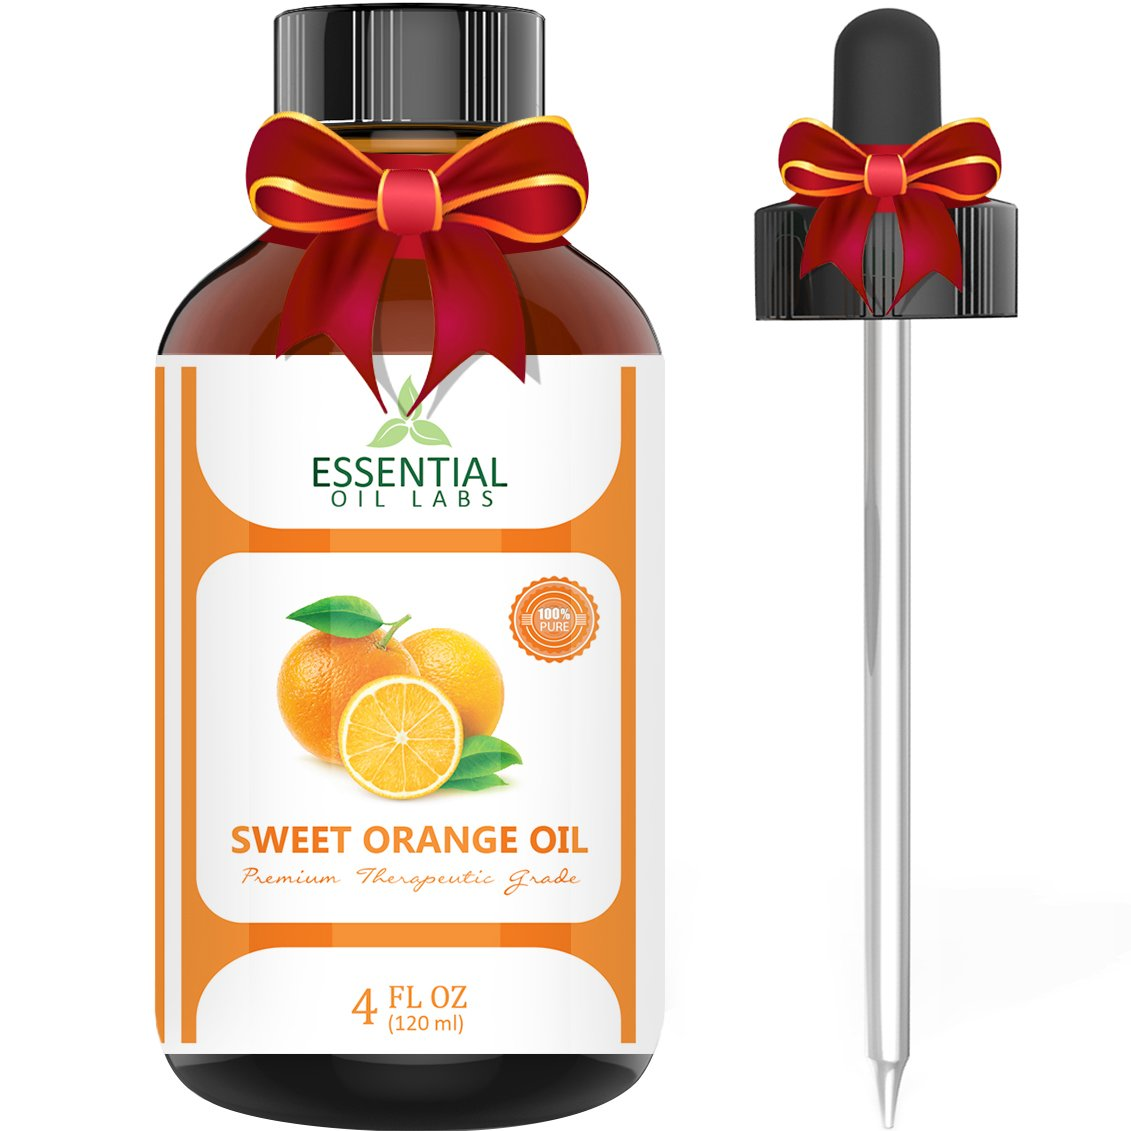 Sweet Orange Essential Oil – 100% Pure and Natural 4 oz. with Glass Dropper - Therapeutic Grade - Uplift Your Mood - Enhance Your Immune System - Wonderful Citrus Scent - Kills Bacteria and Pathogens